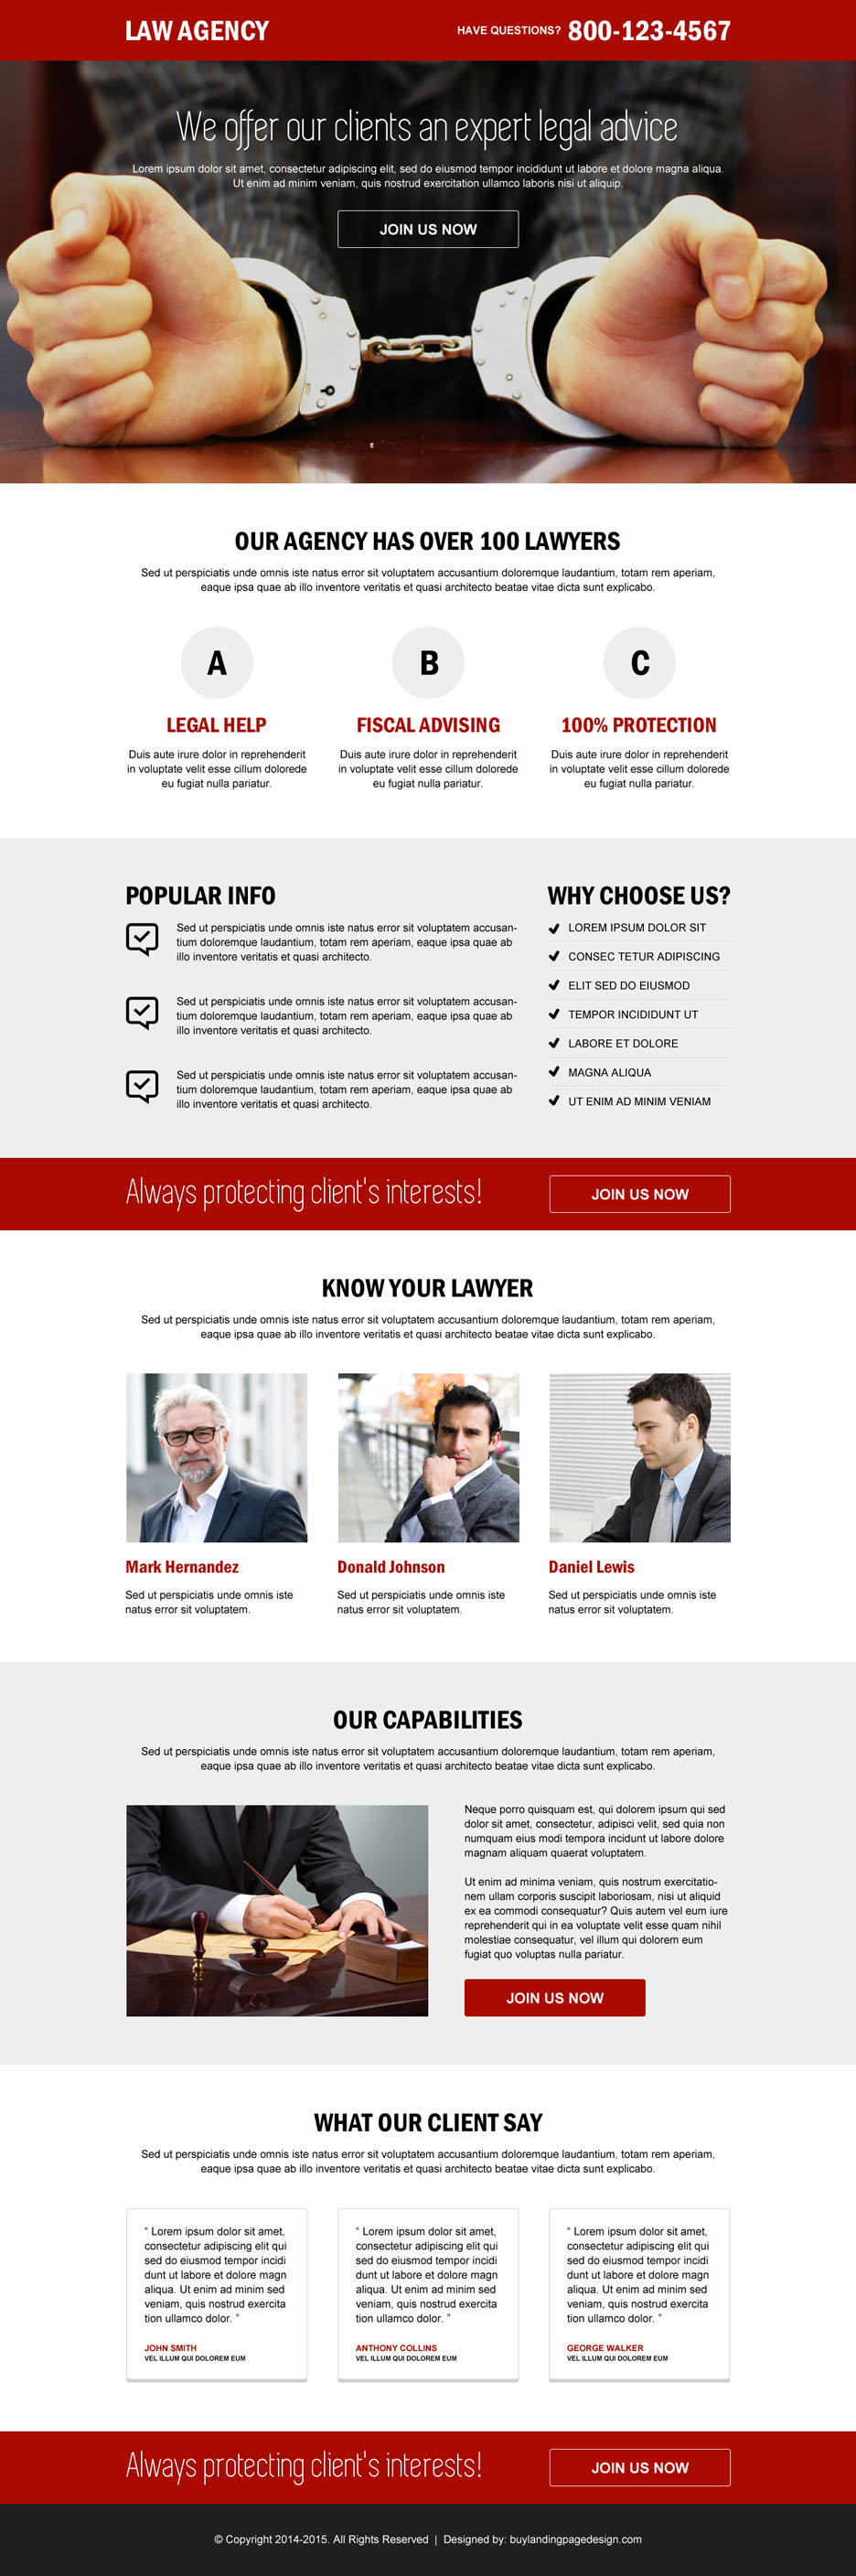 law-agency-call-to-action-informative-landing-page-design-template-001